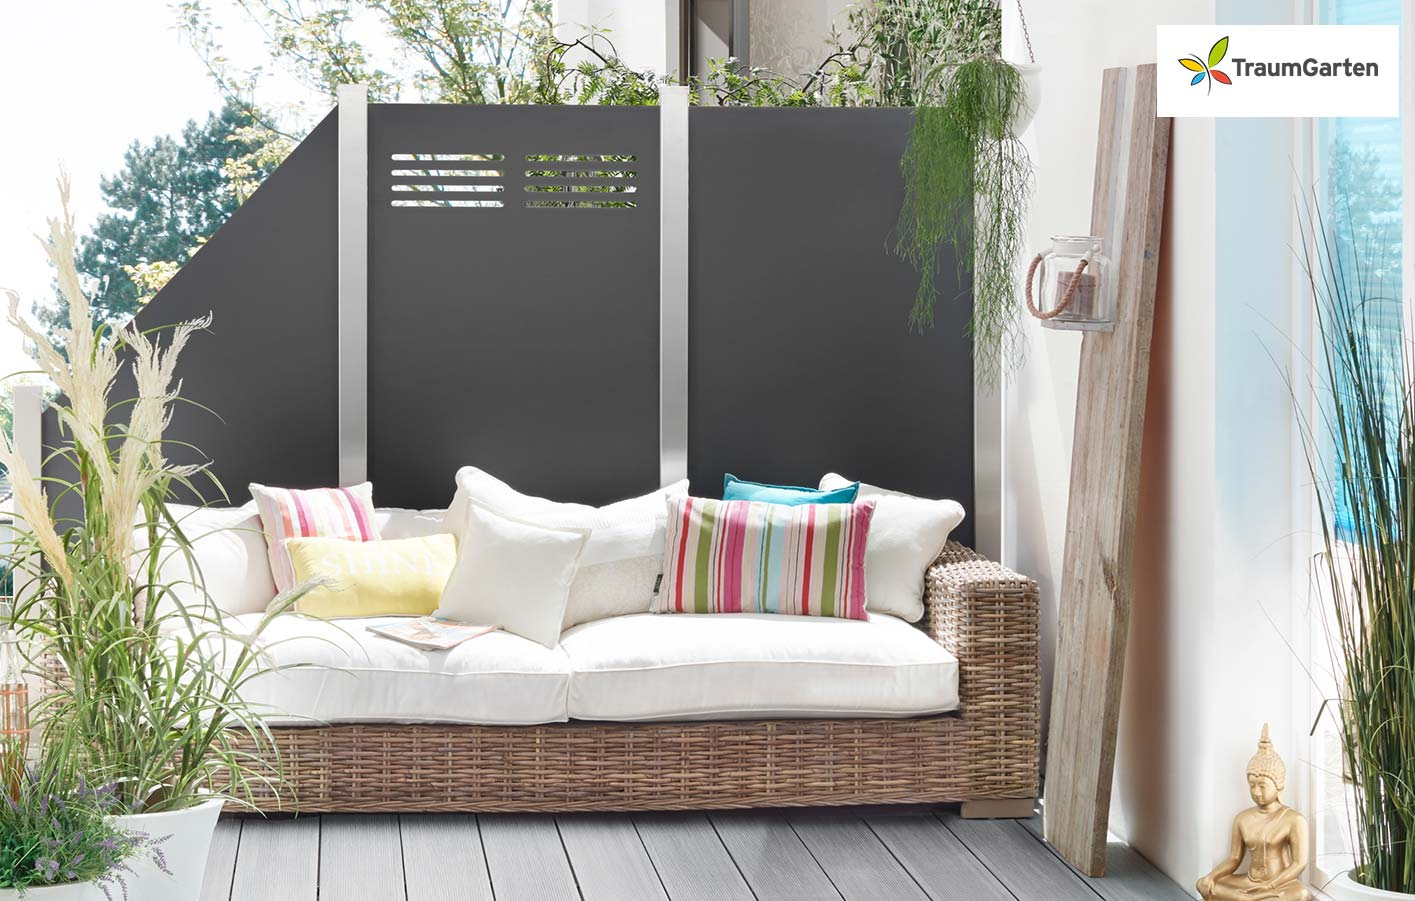 terrassendielen sichtschutz z une lippstadt paderborn geseke b ren soest sauerland. Black Bedroom Furniture Sets. Home Design Ideas